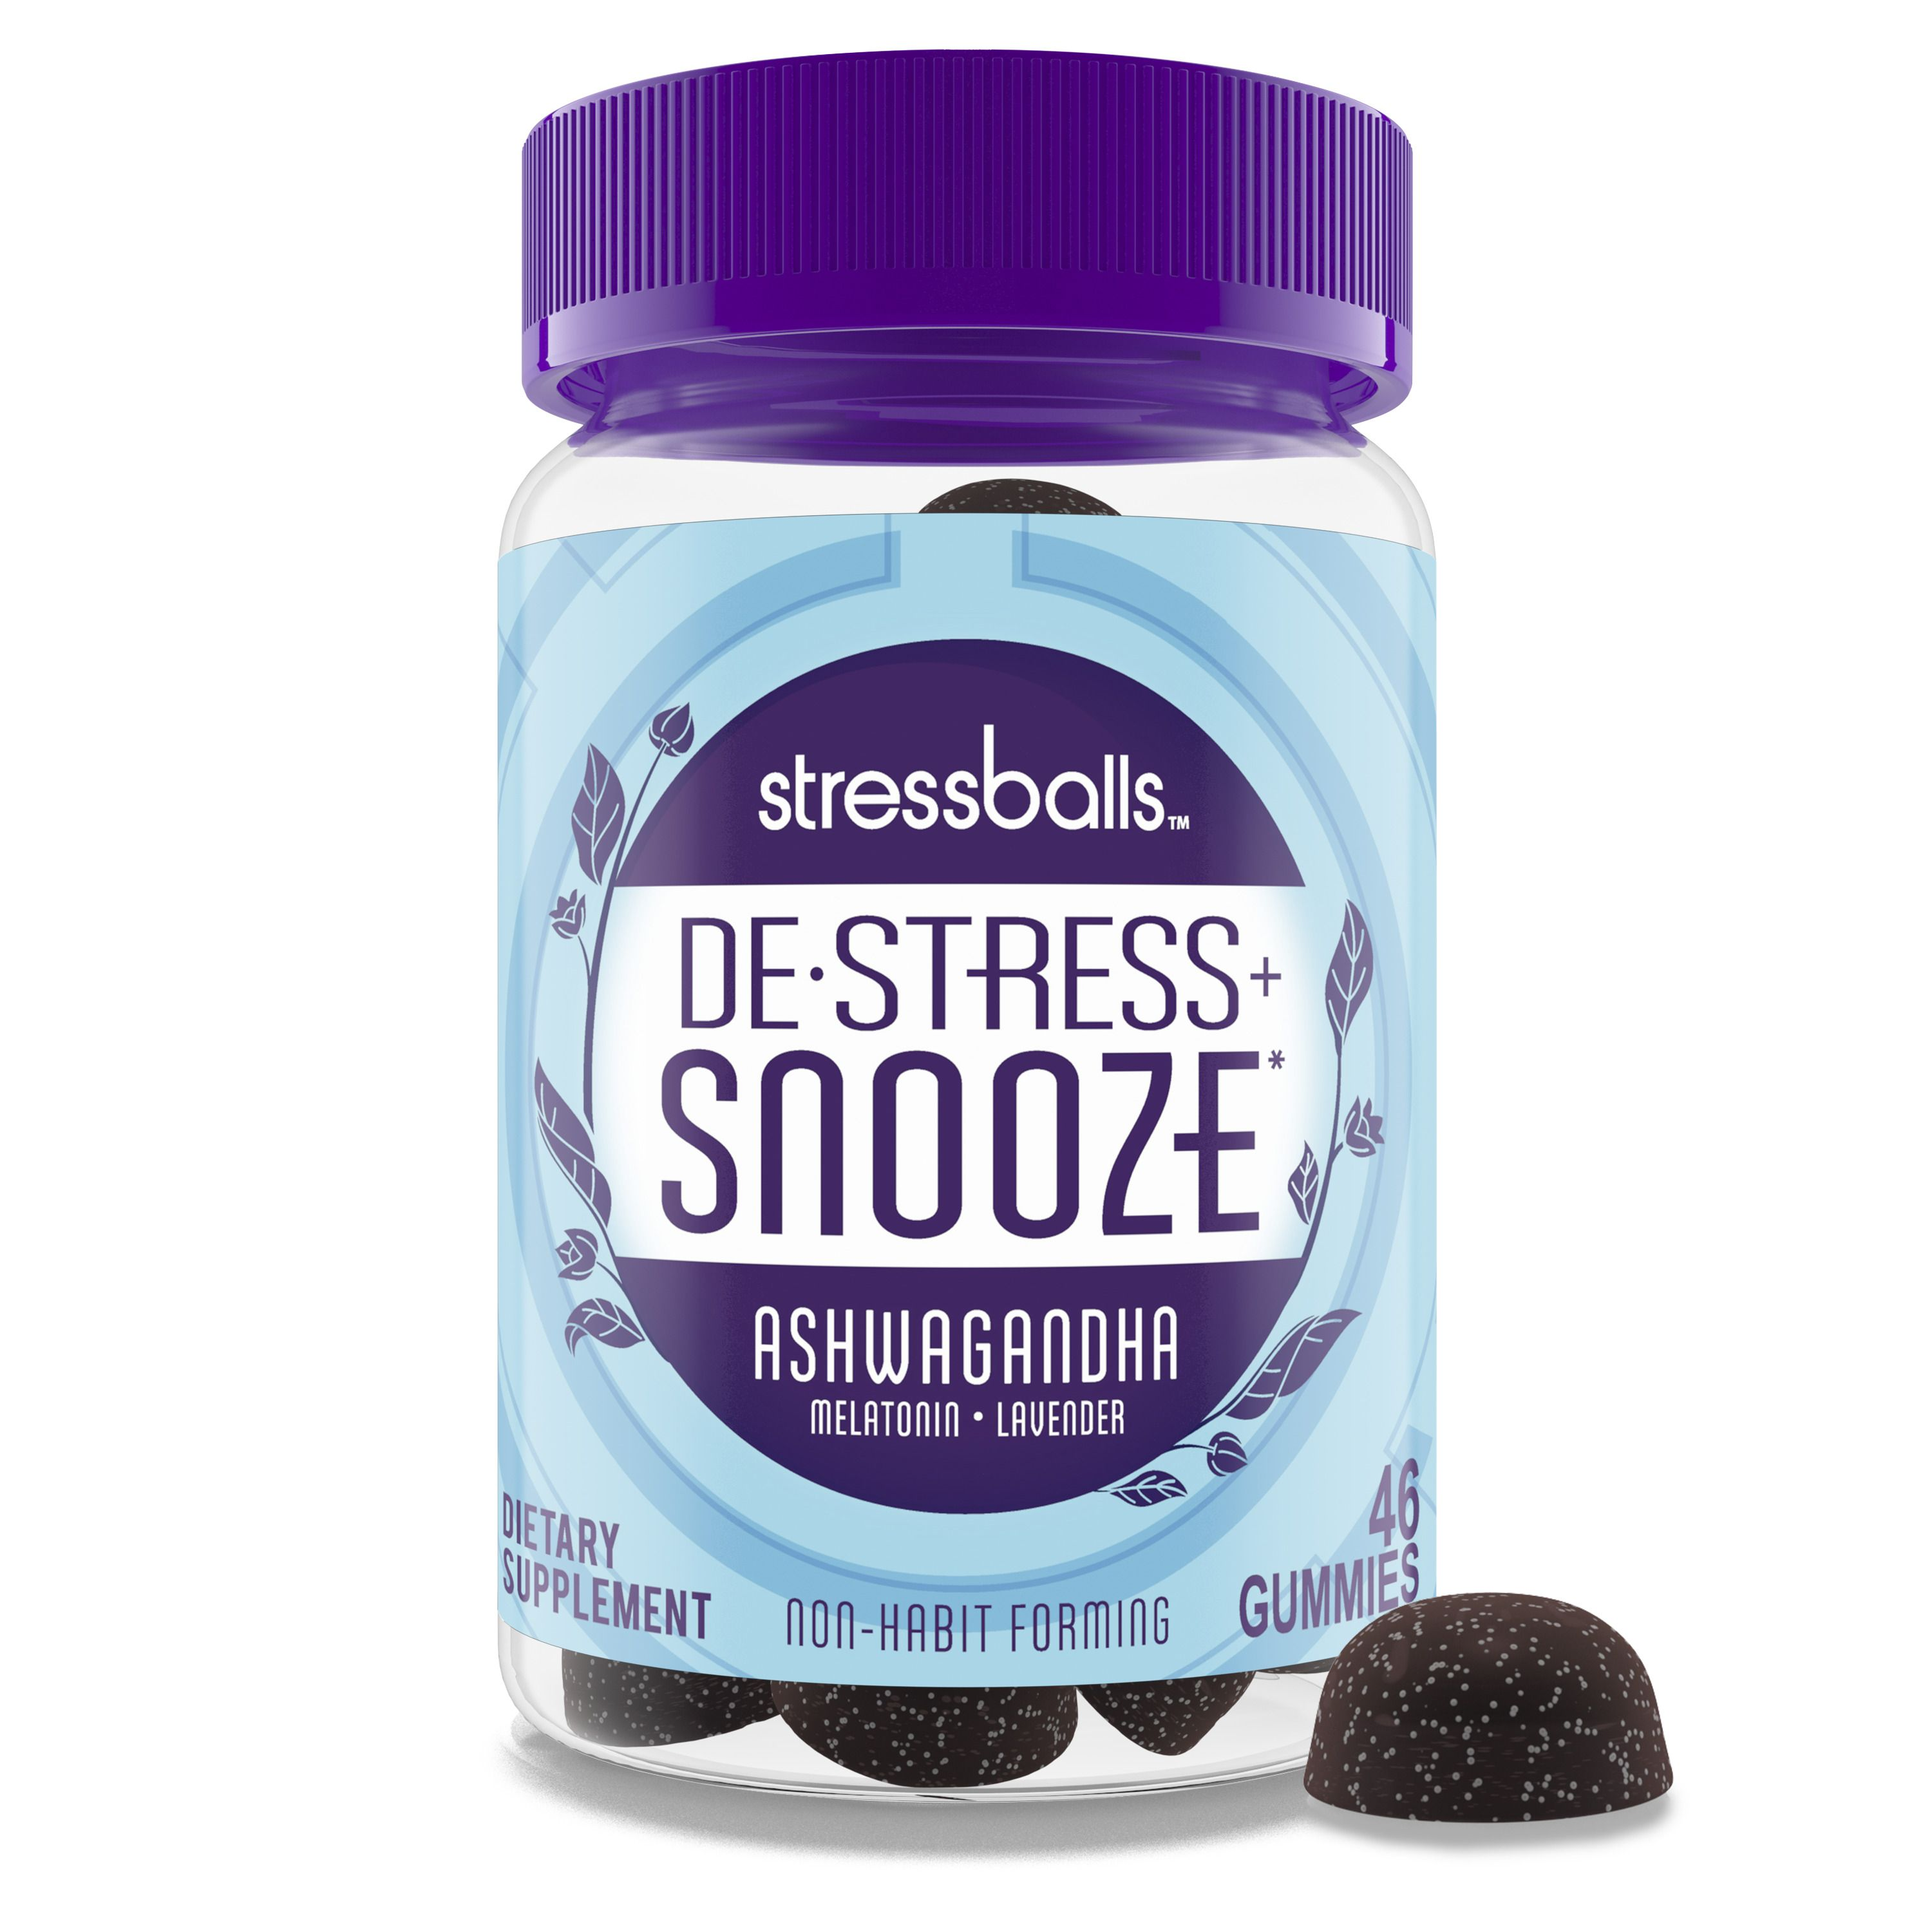 Stressballs De Stress Sleep Supplement Gummies With Melatonin 46